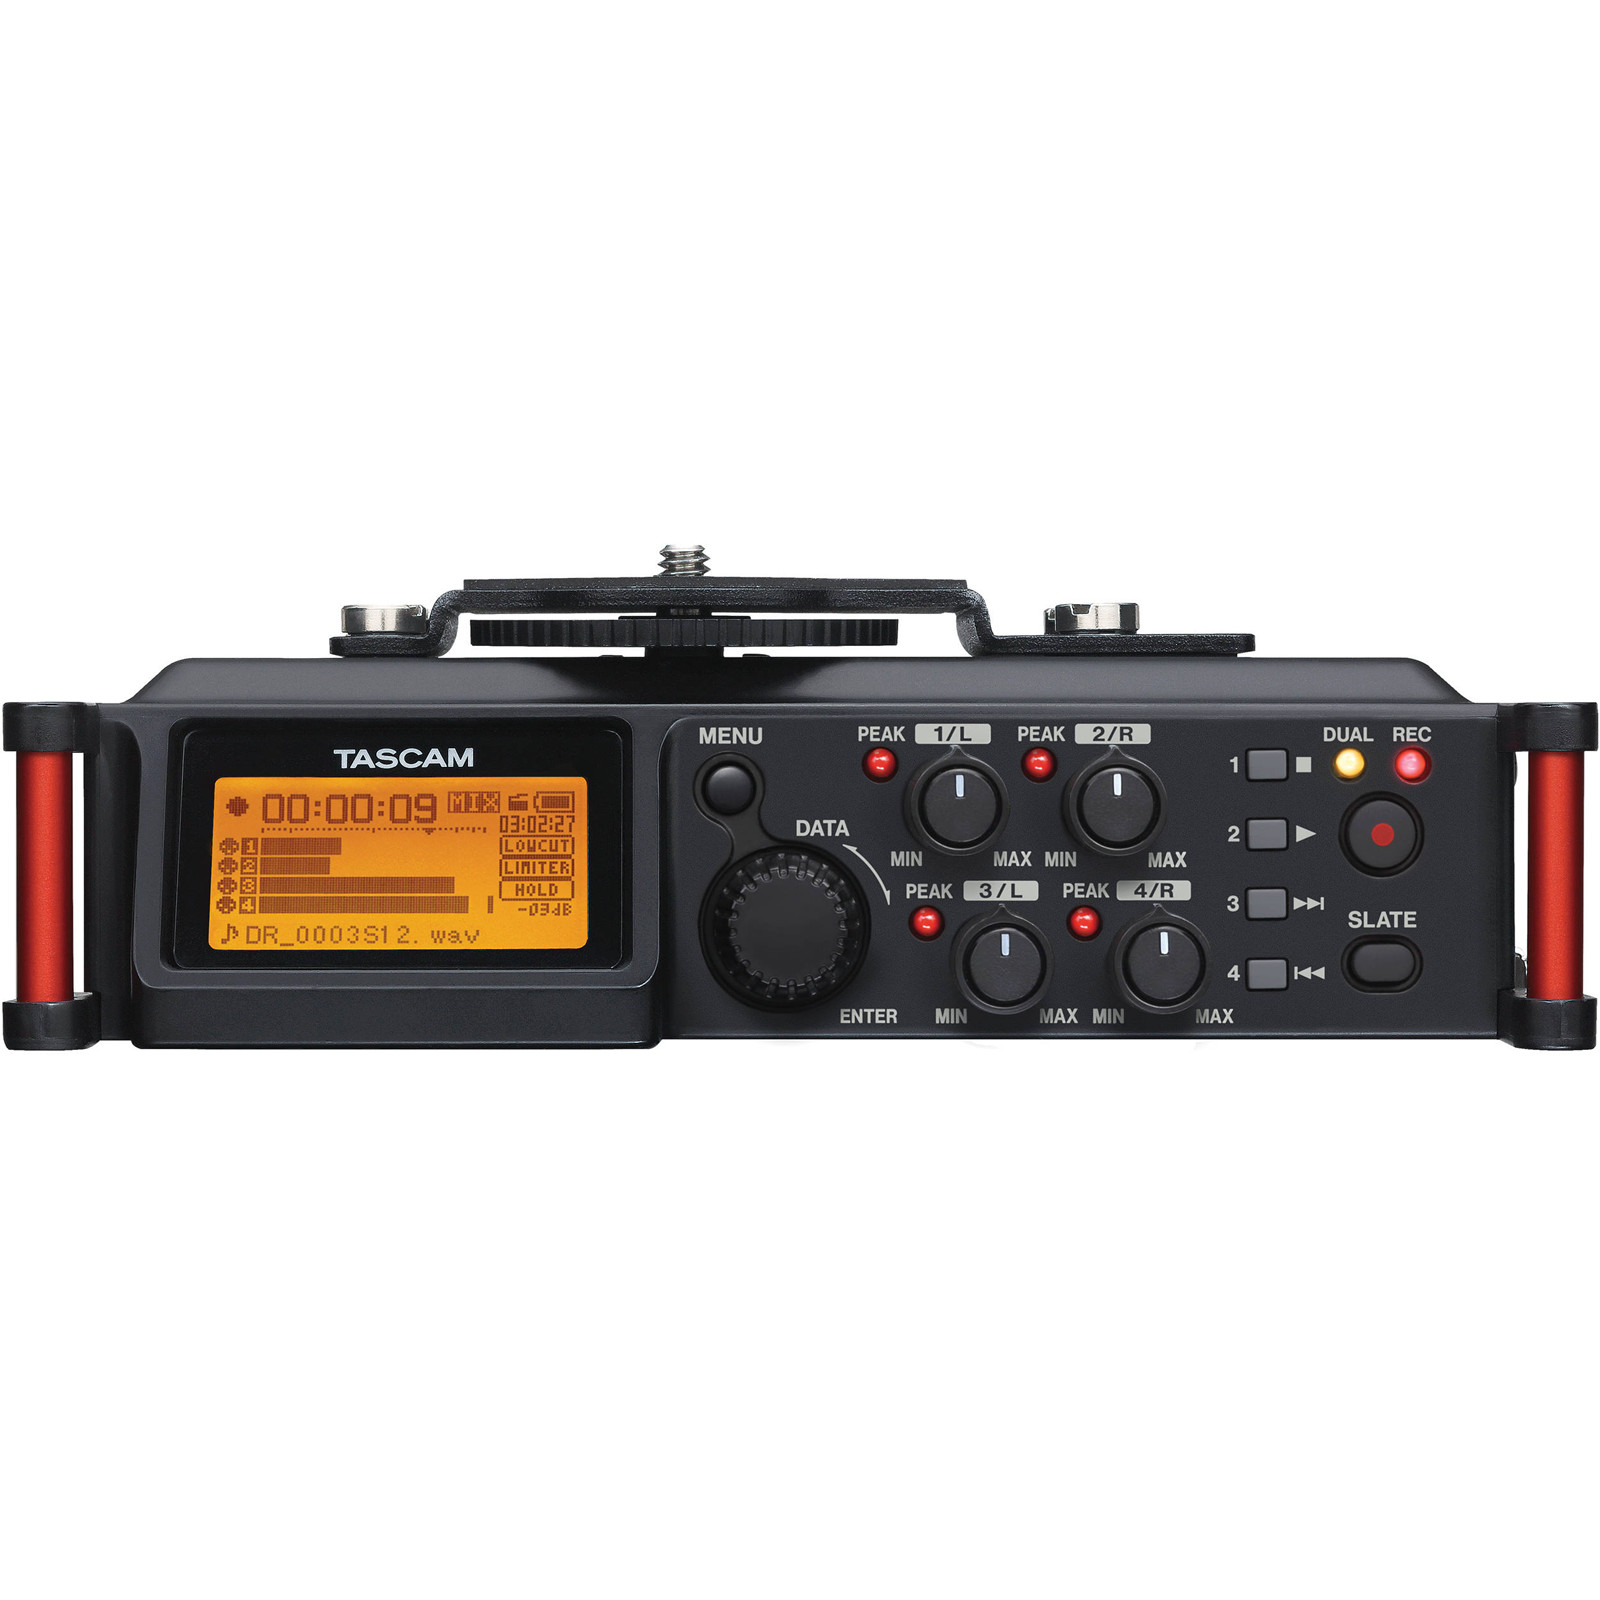 Buy the TASCAM DR-70D 4-Channel Audio Recording Device for